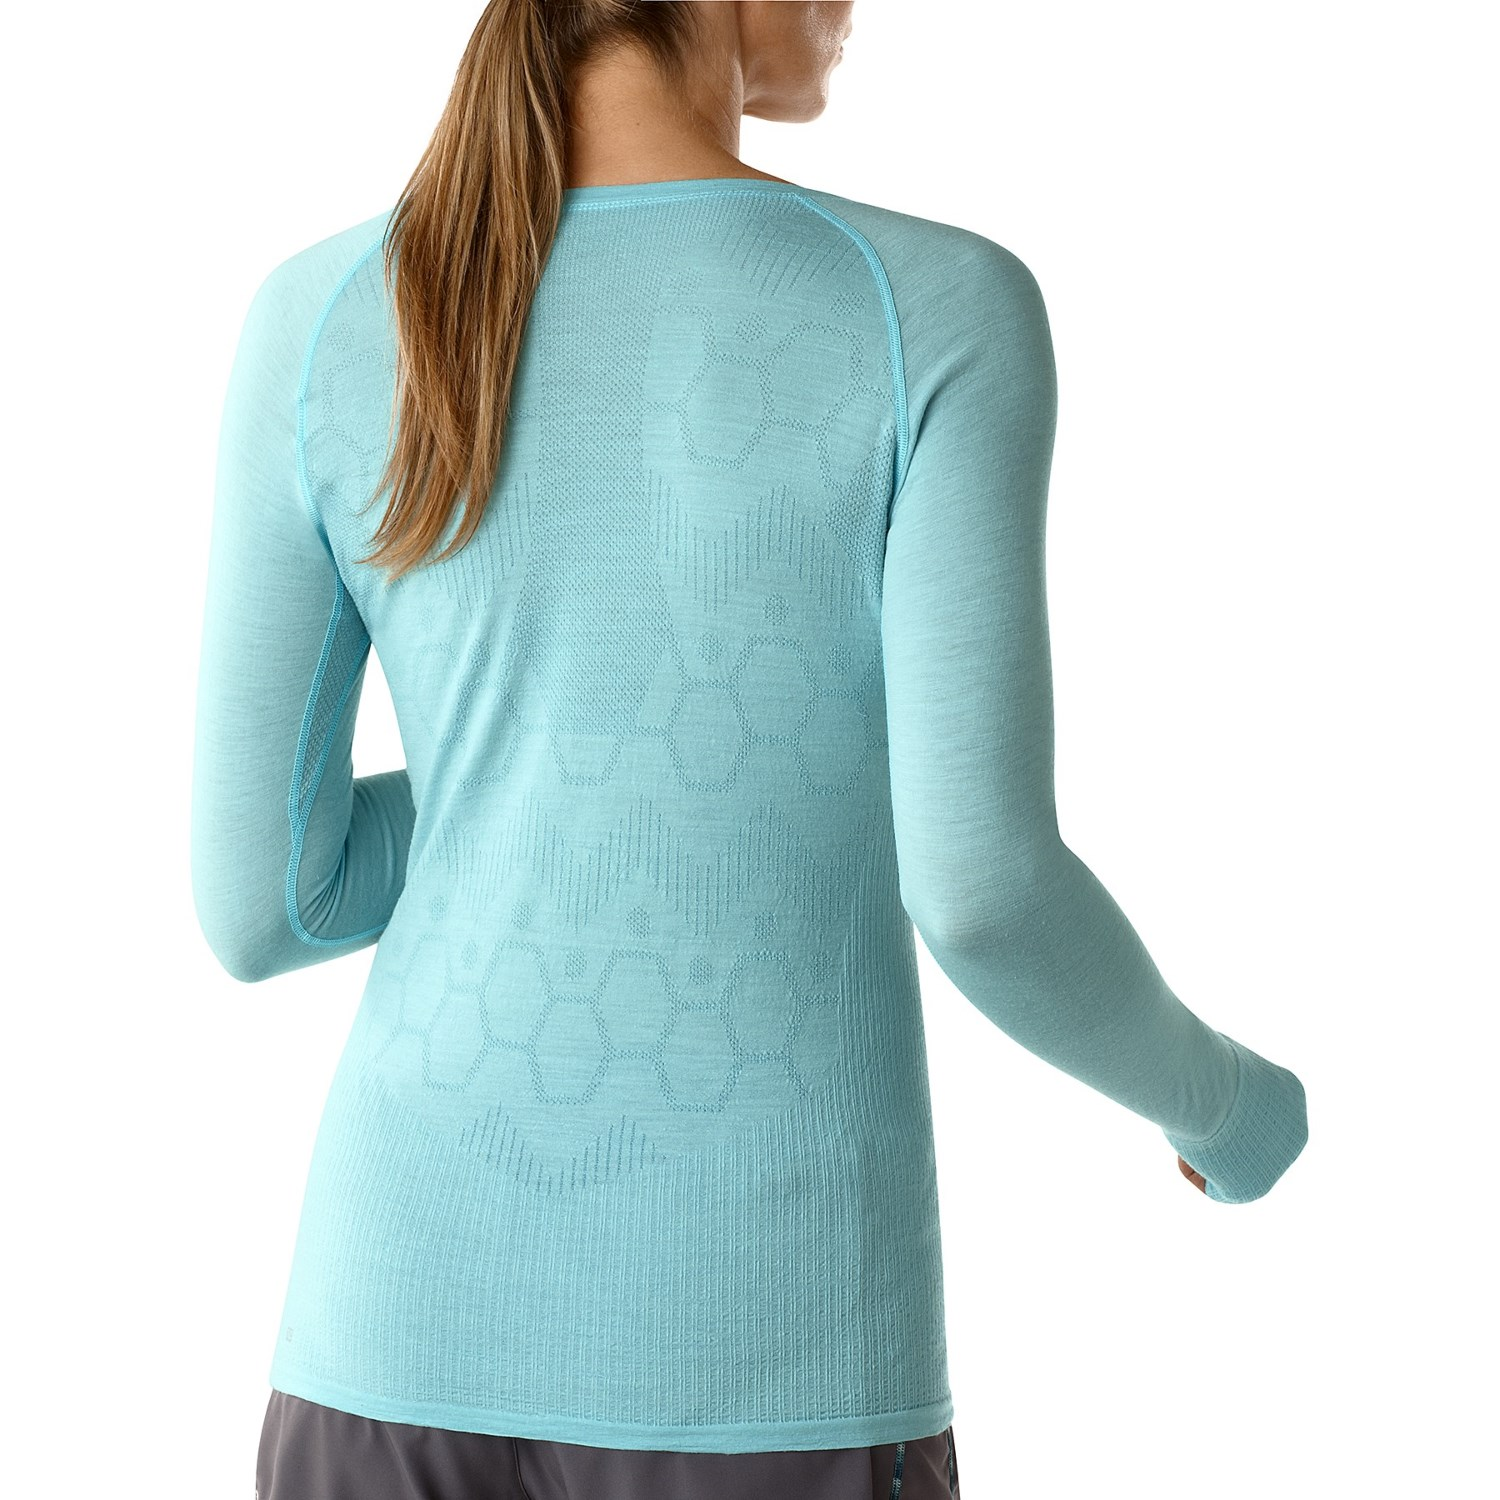 Smartwool phd seamless run shirt for women 9145h for Merino wool shirt womens